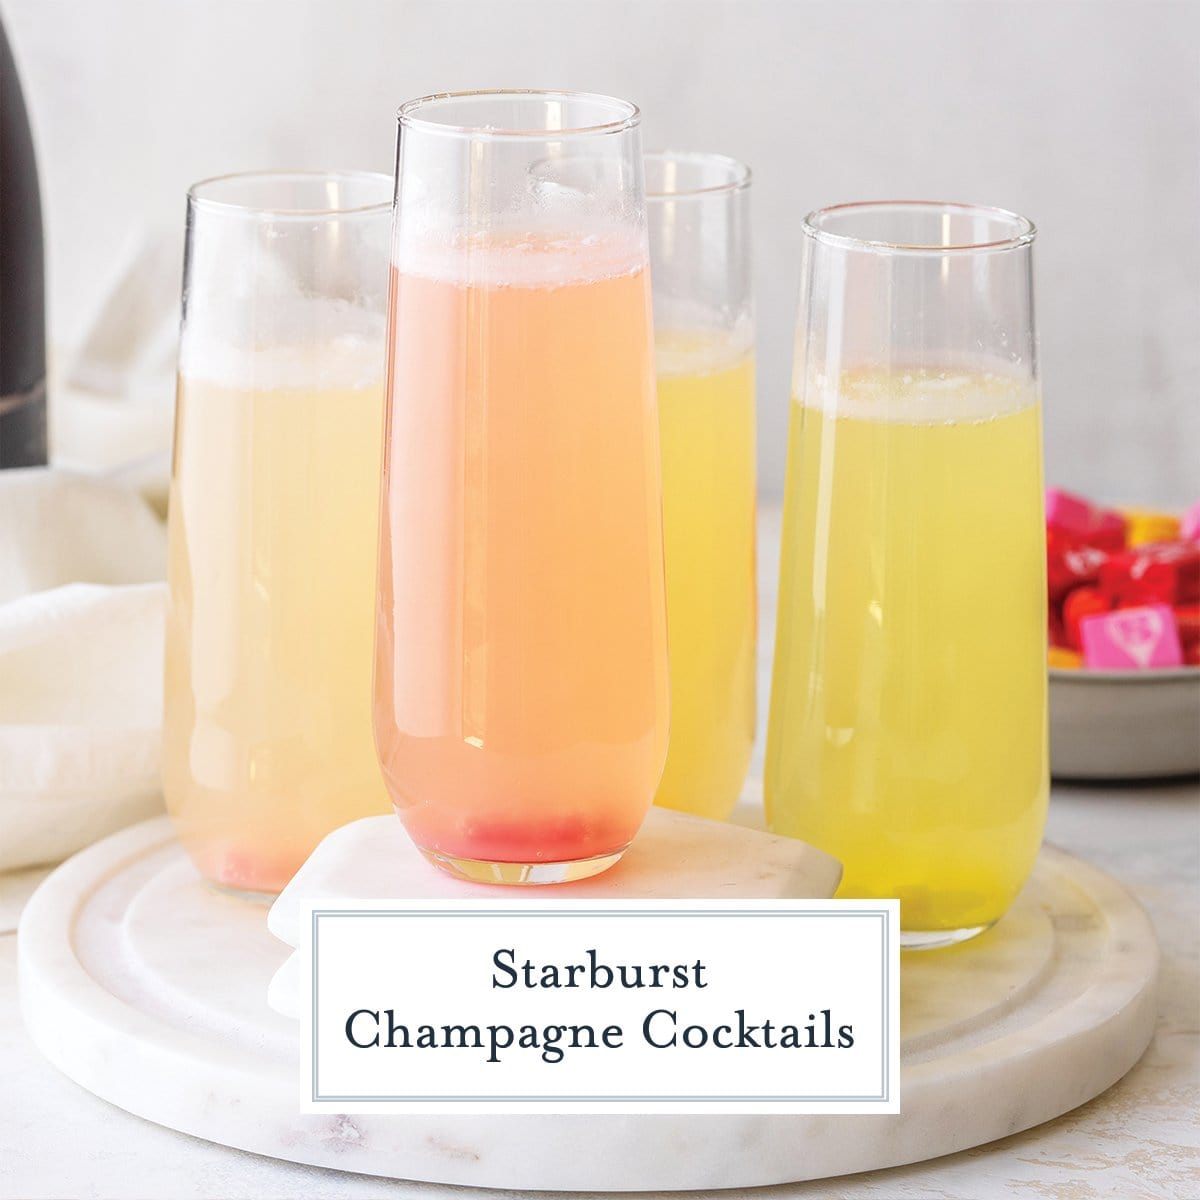 fruity and colorful champagne cocktails